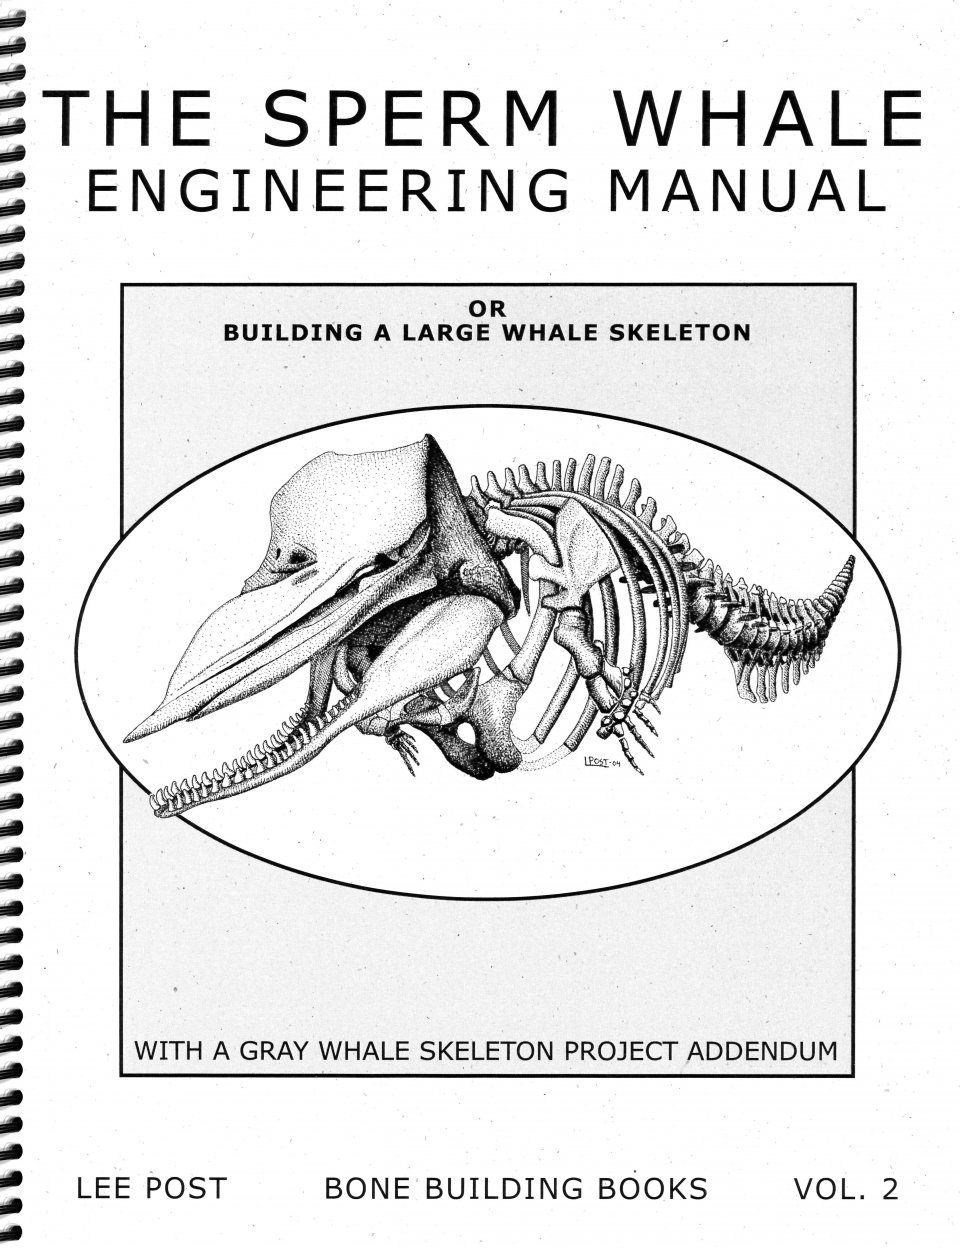 Bone Building Books, Volume 2: The Sperm Whale Engineering Manual